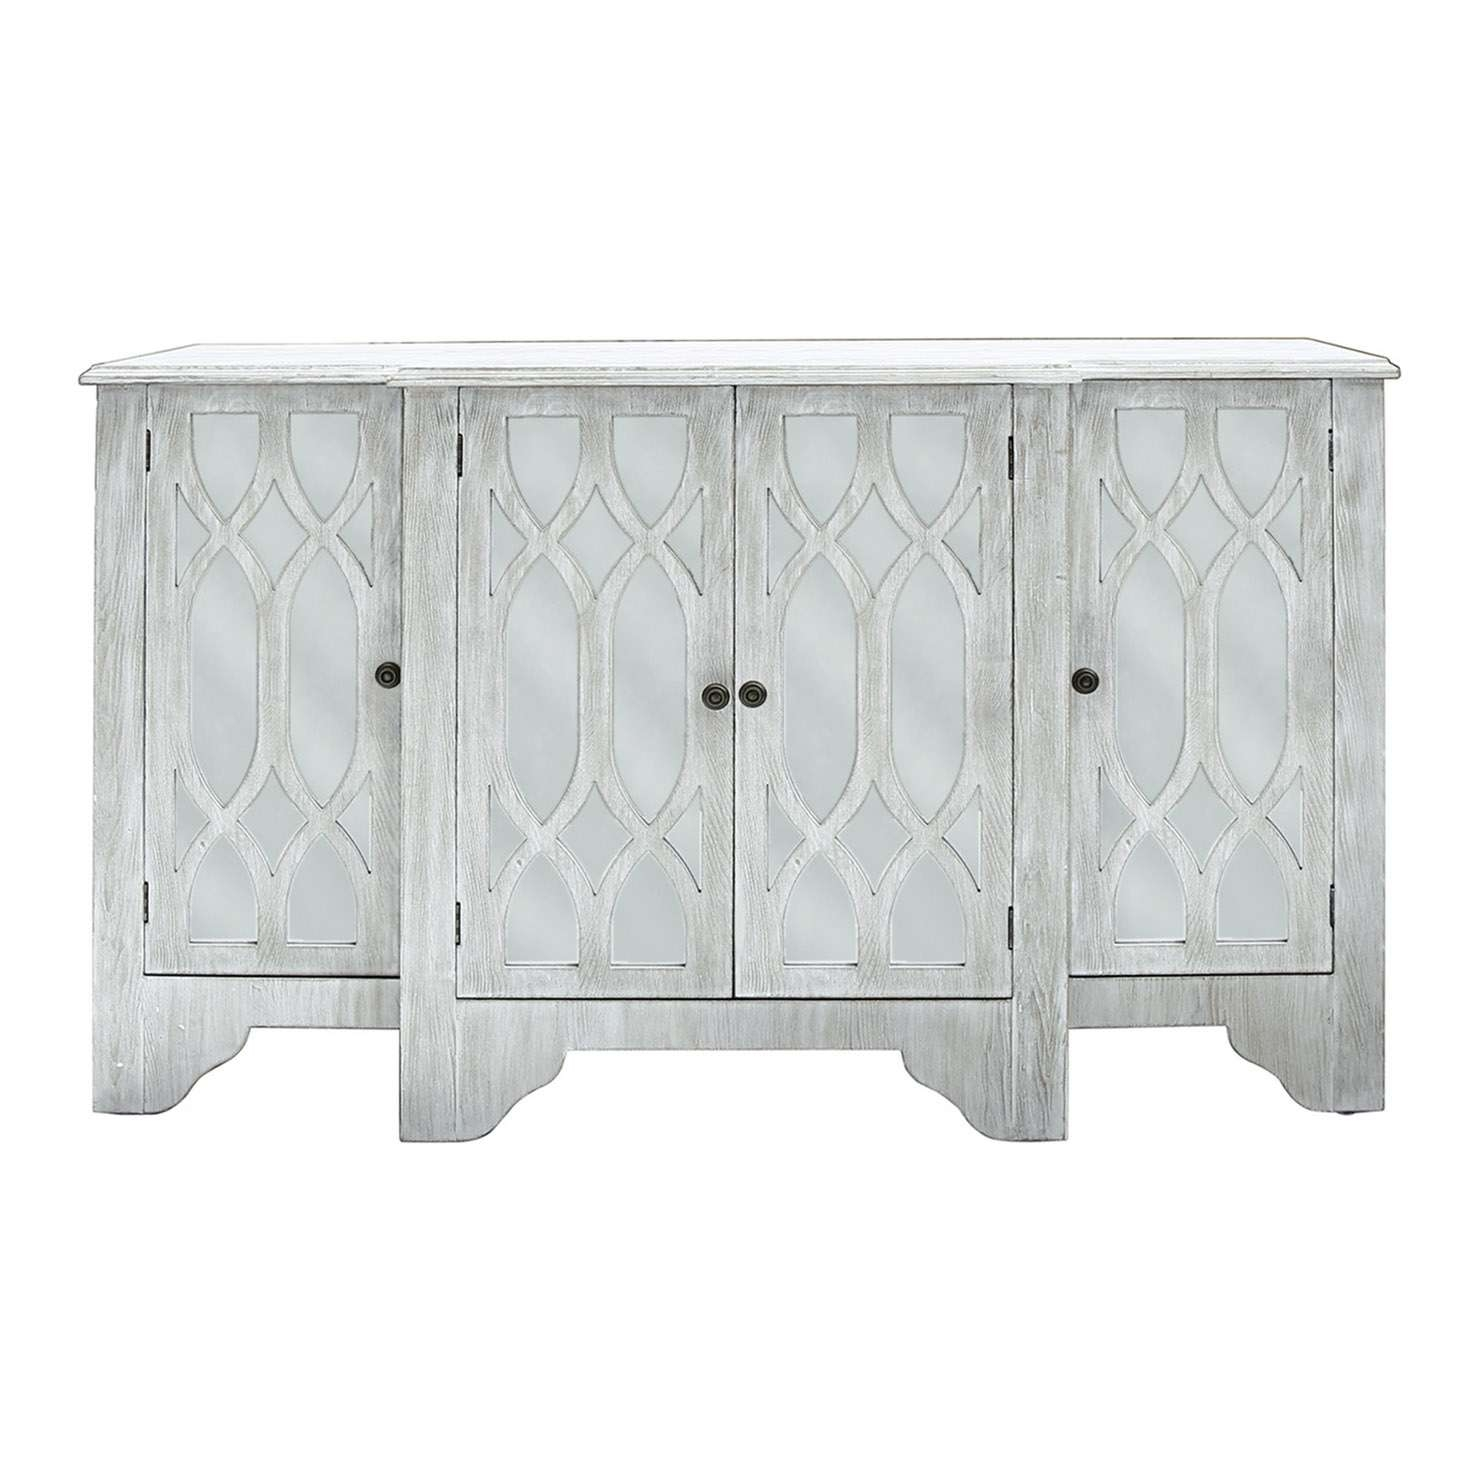 Oslo Mirrored 4 Door Sideboard, Washed Ash | Achica In White Mirrored Sideboards (View 15 of 20)